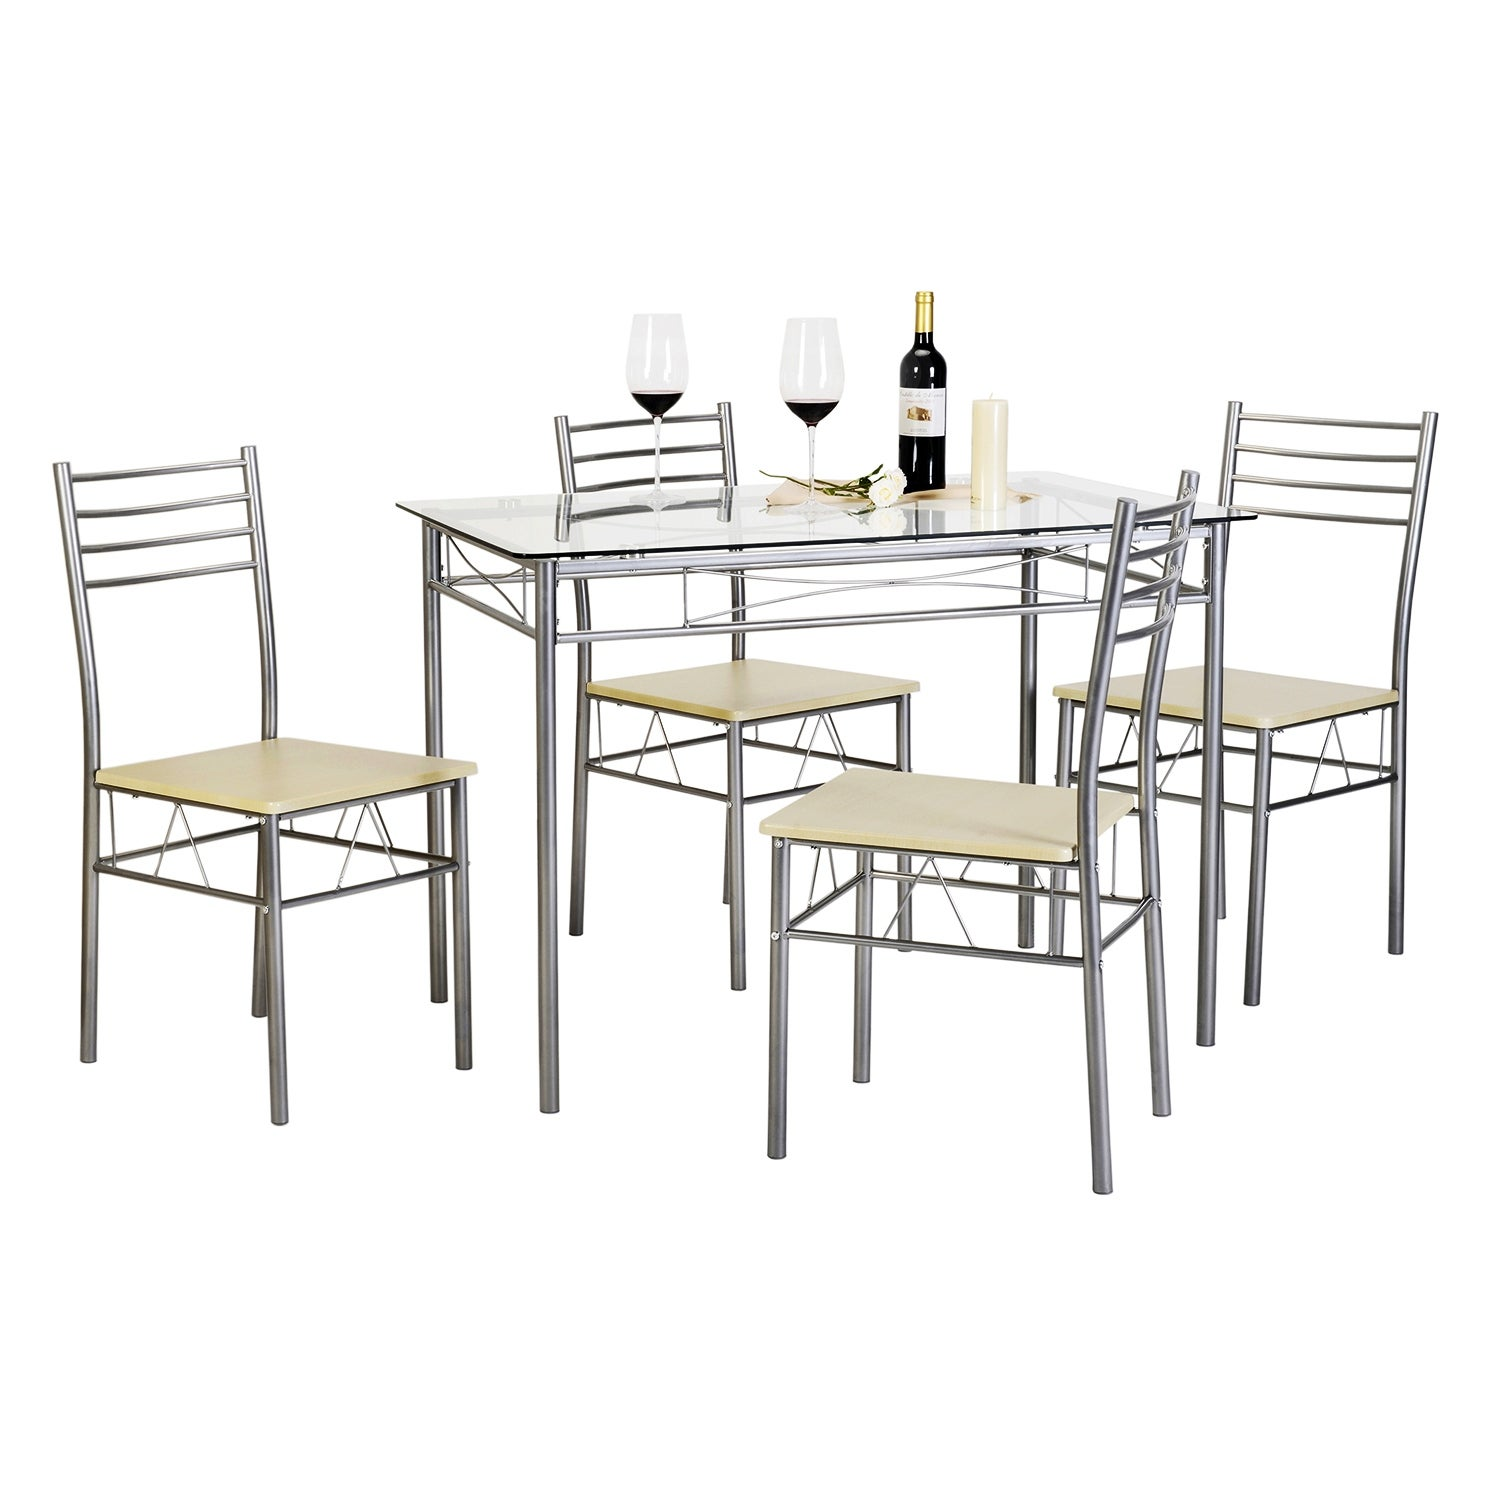 silver dining table.  Silver Dining Room Bar Furniture For Less Overstock com